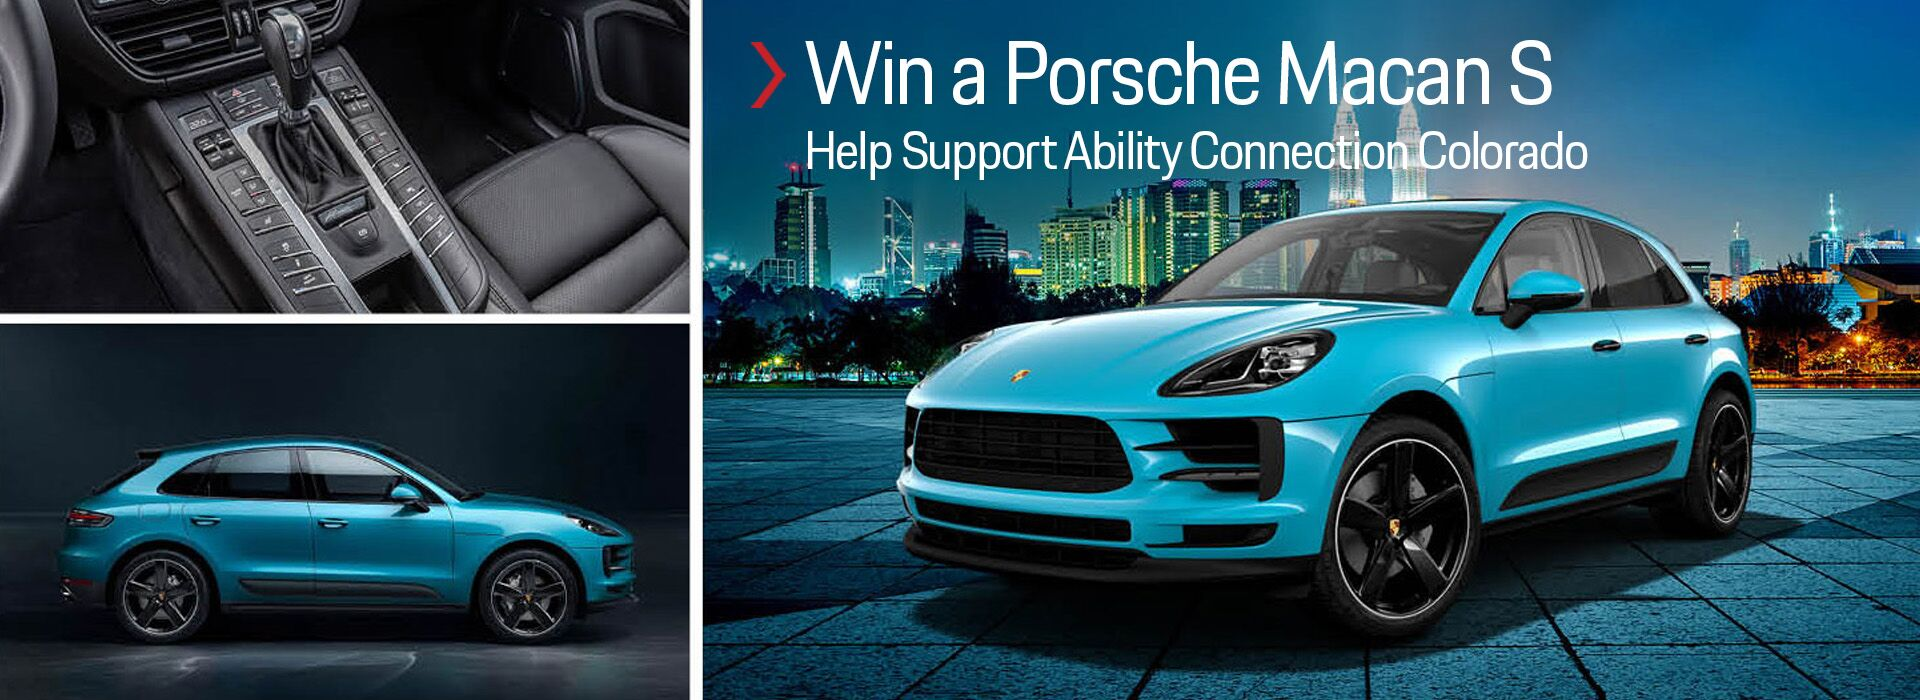 Win a Porsche Macan S and Help Support Ability Connection Colorado